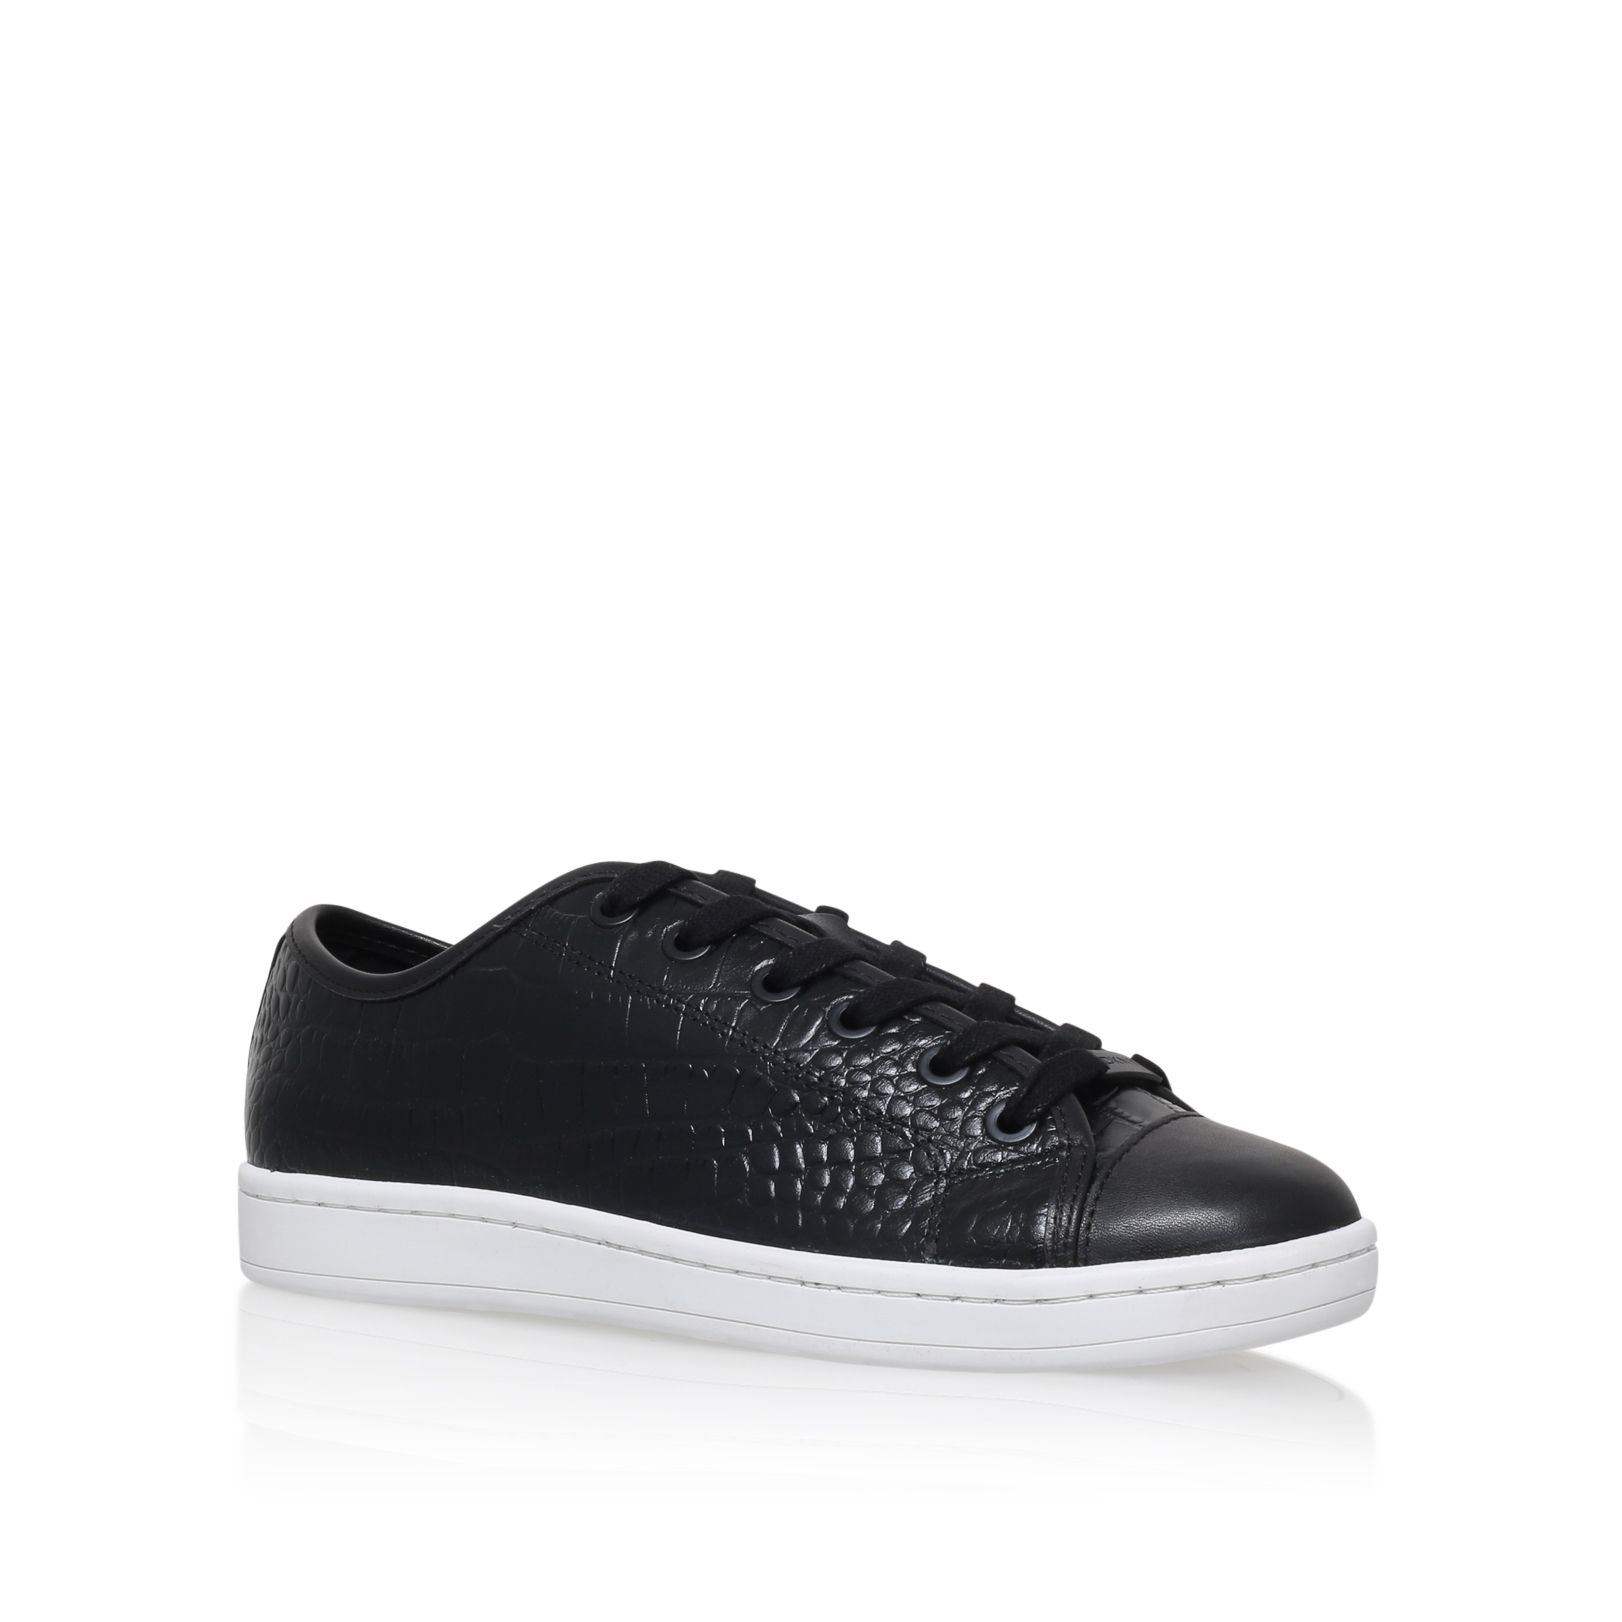 DKNY Baylee flat lace up sneakers, Black